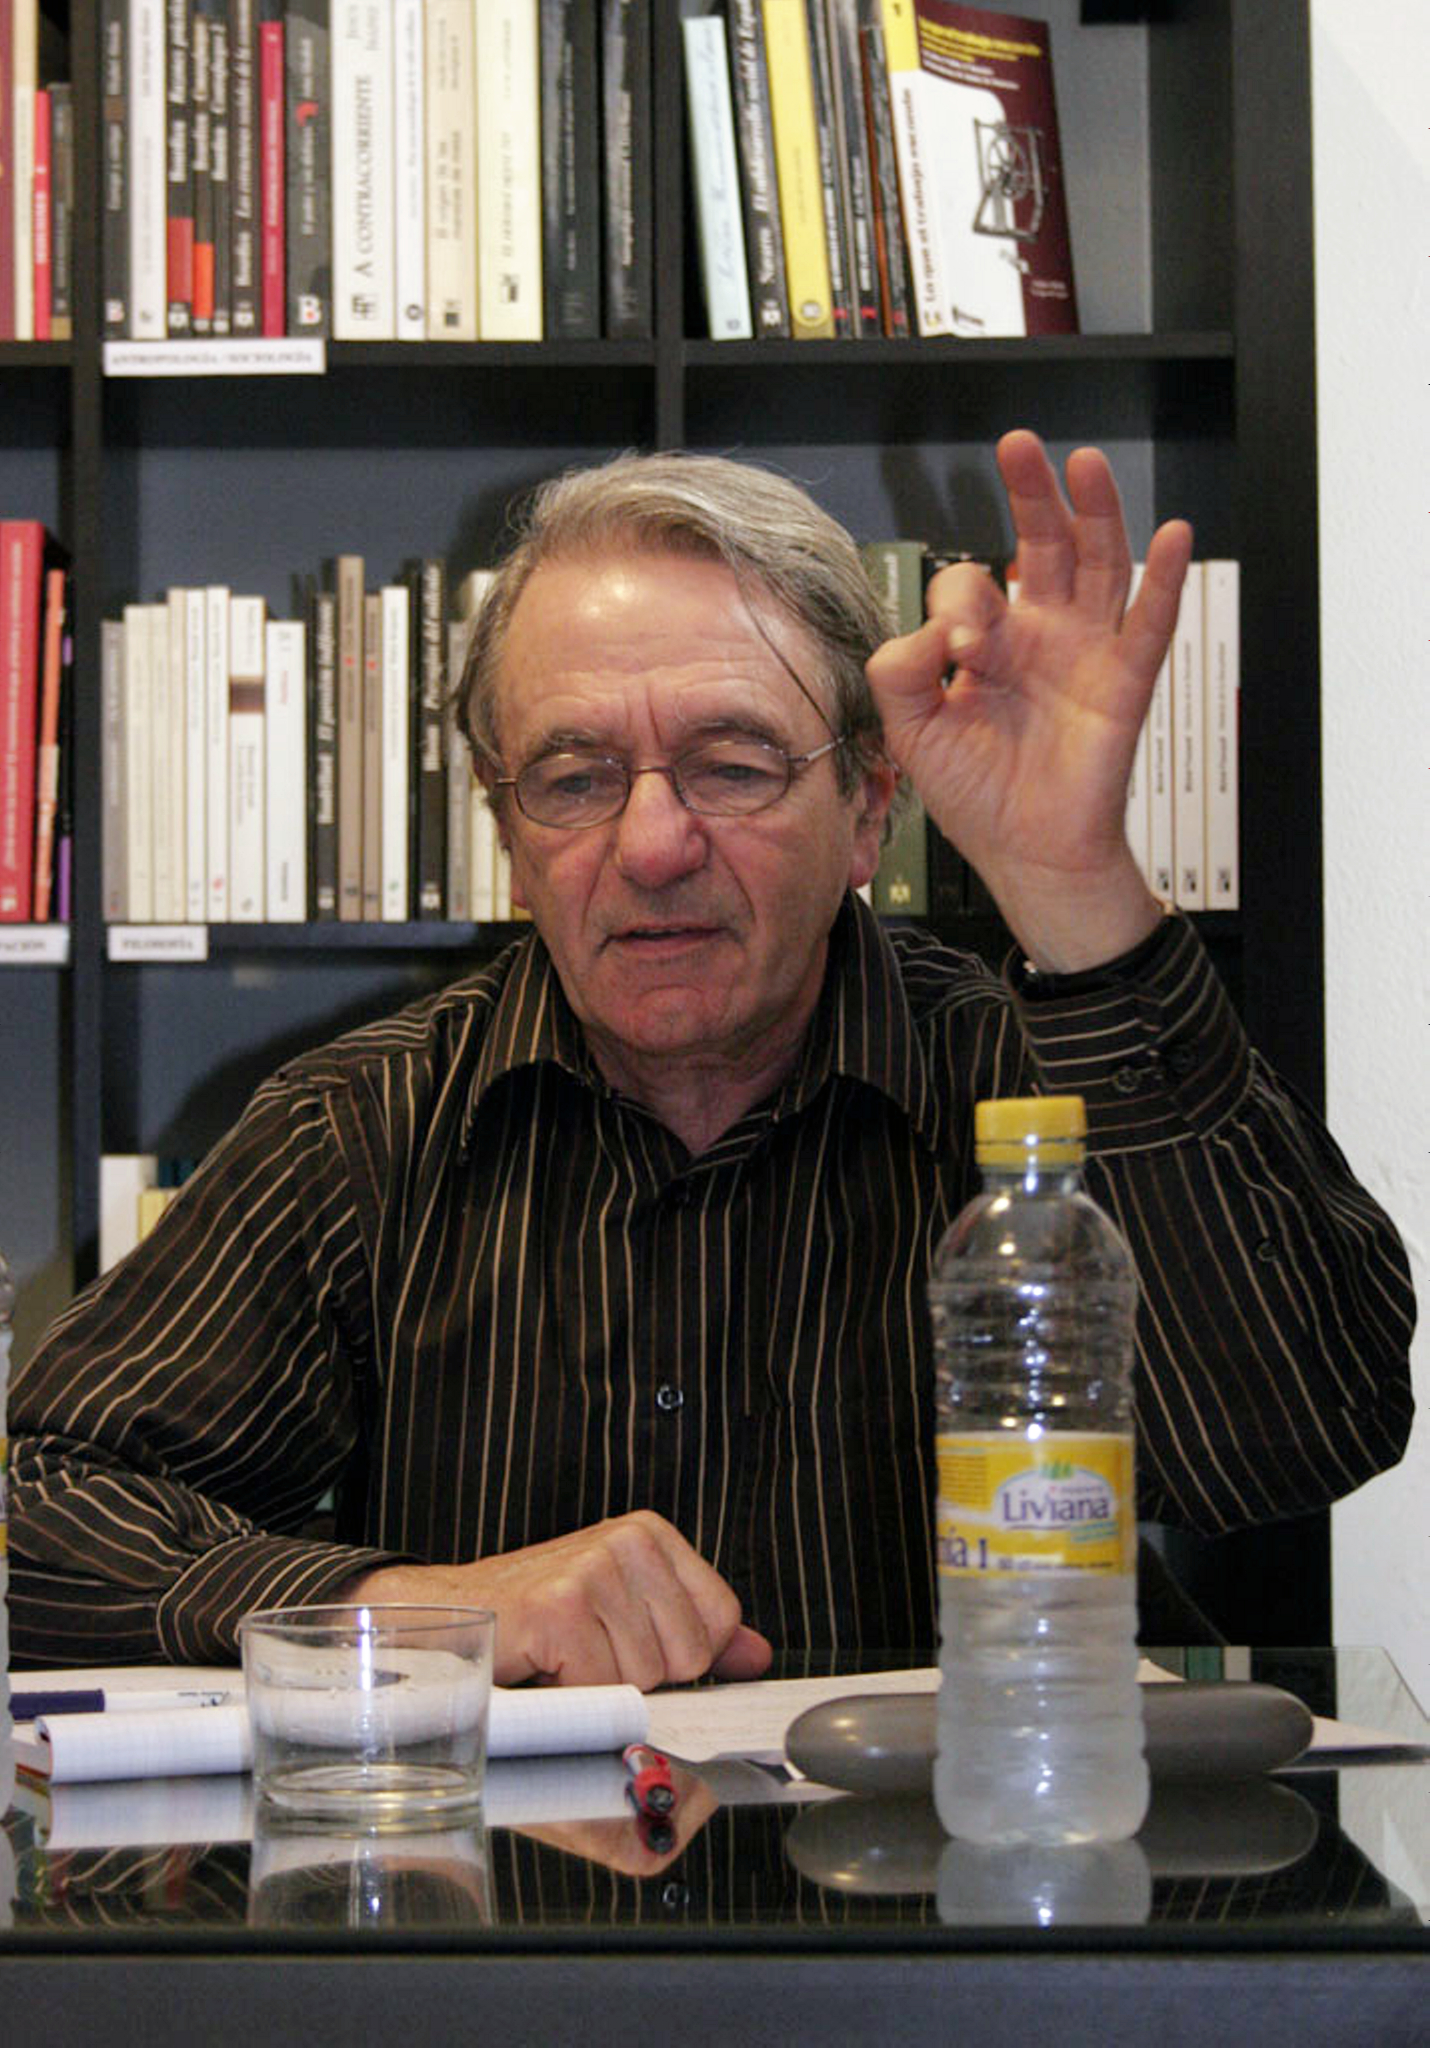 http://upload.wikimedia.org/wikipedia/commons/0/07/Jacques_Ranciere-2.jpg